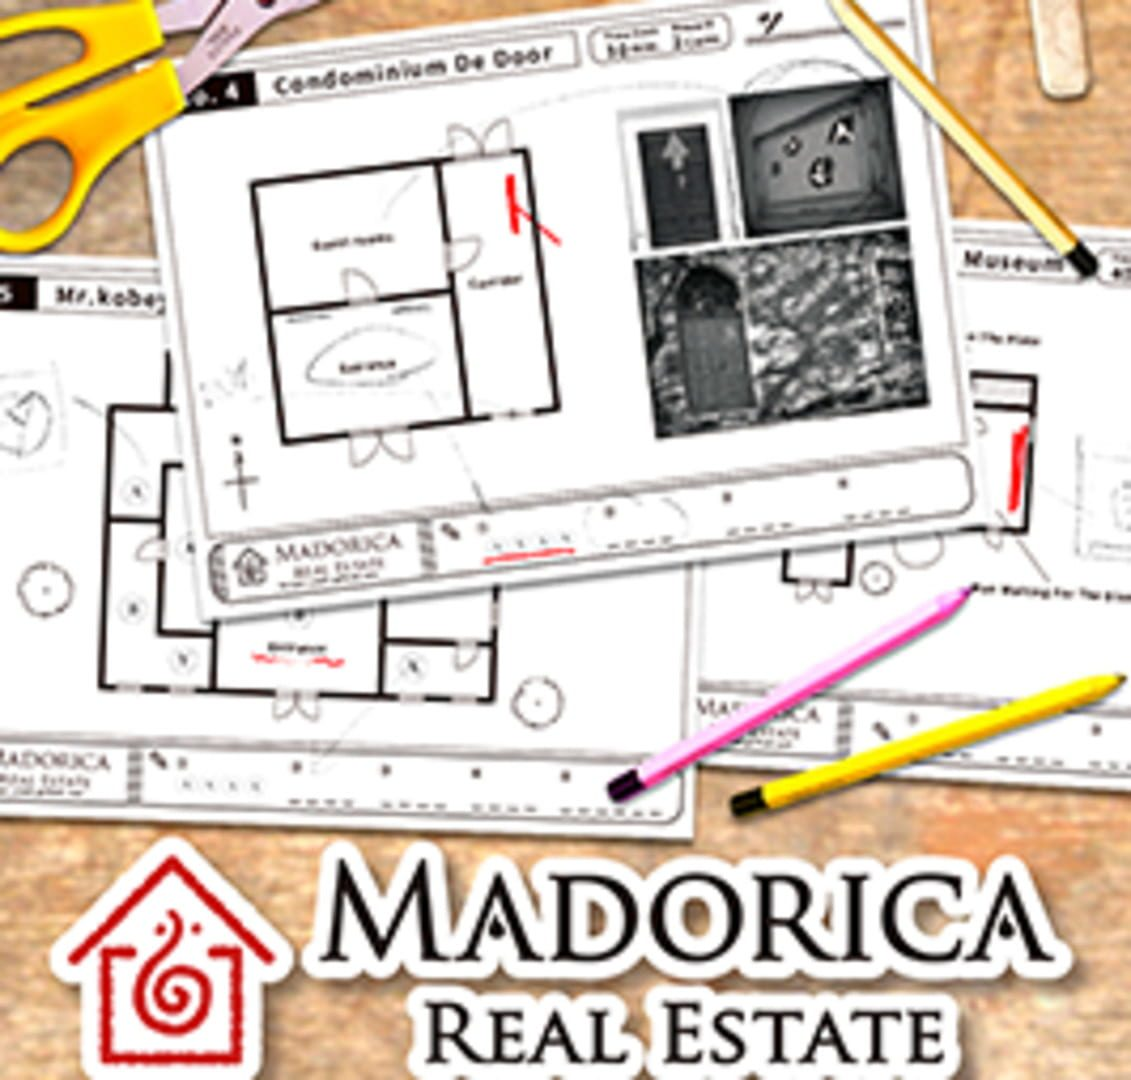 buy Madorica Real Estate cd key for pc platform